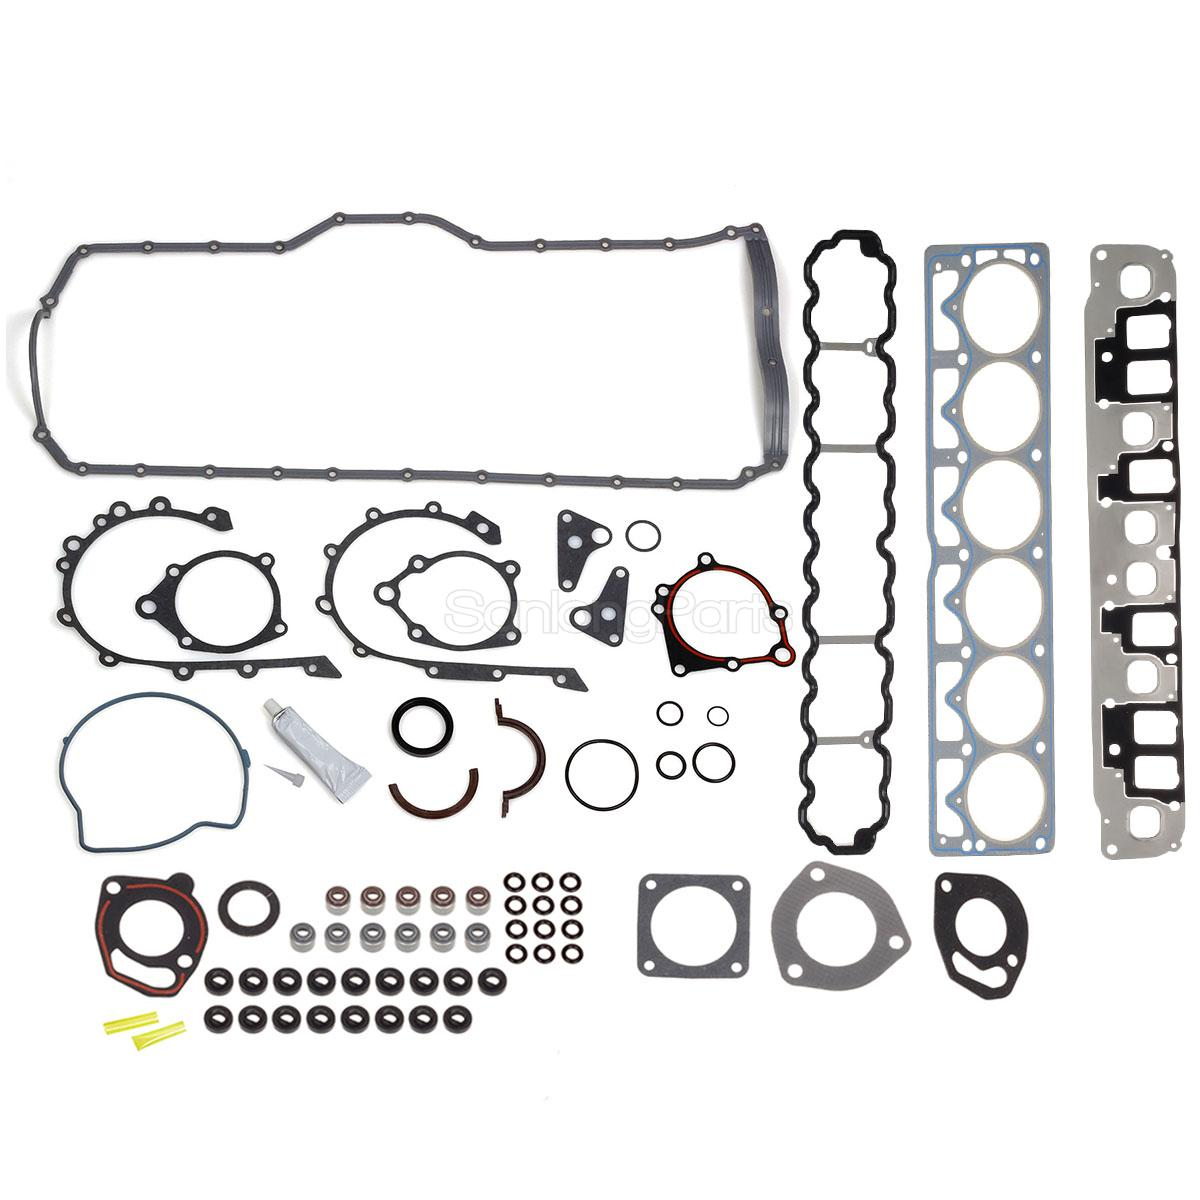 Full Gasket Kits For Jeep Grand Cherokee Comanche Wrangler